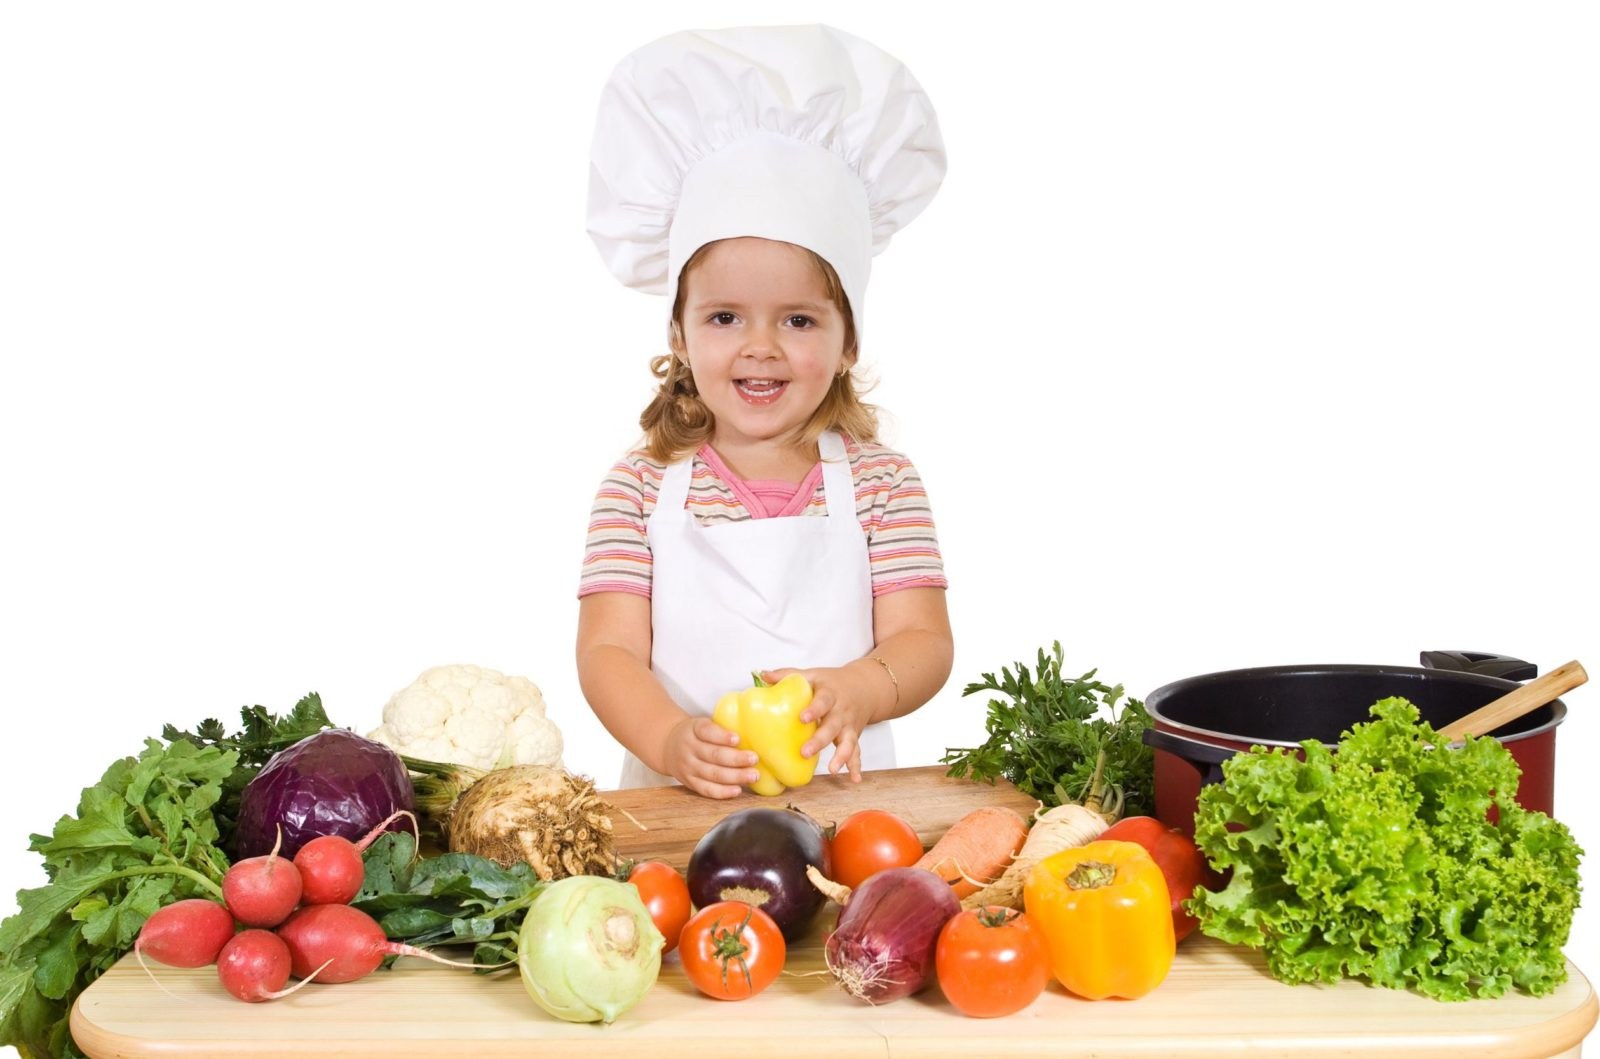 Kid Preparing a bunch of healthy food for immediate consumption.